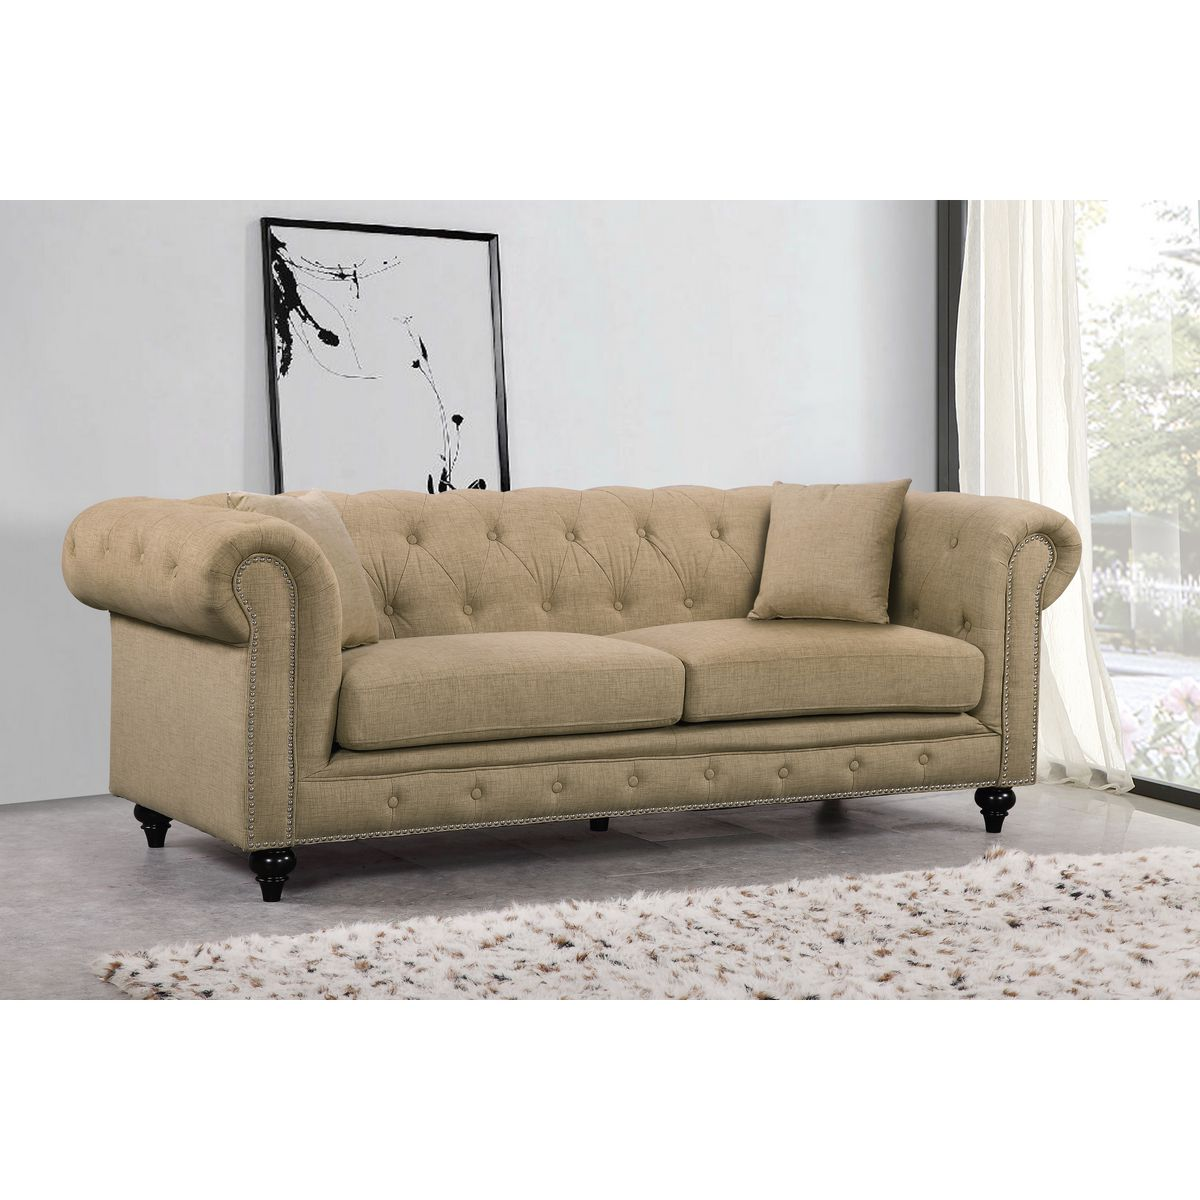 Meridian Furniture 662sand S Chesterfield Tufted Sand